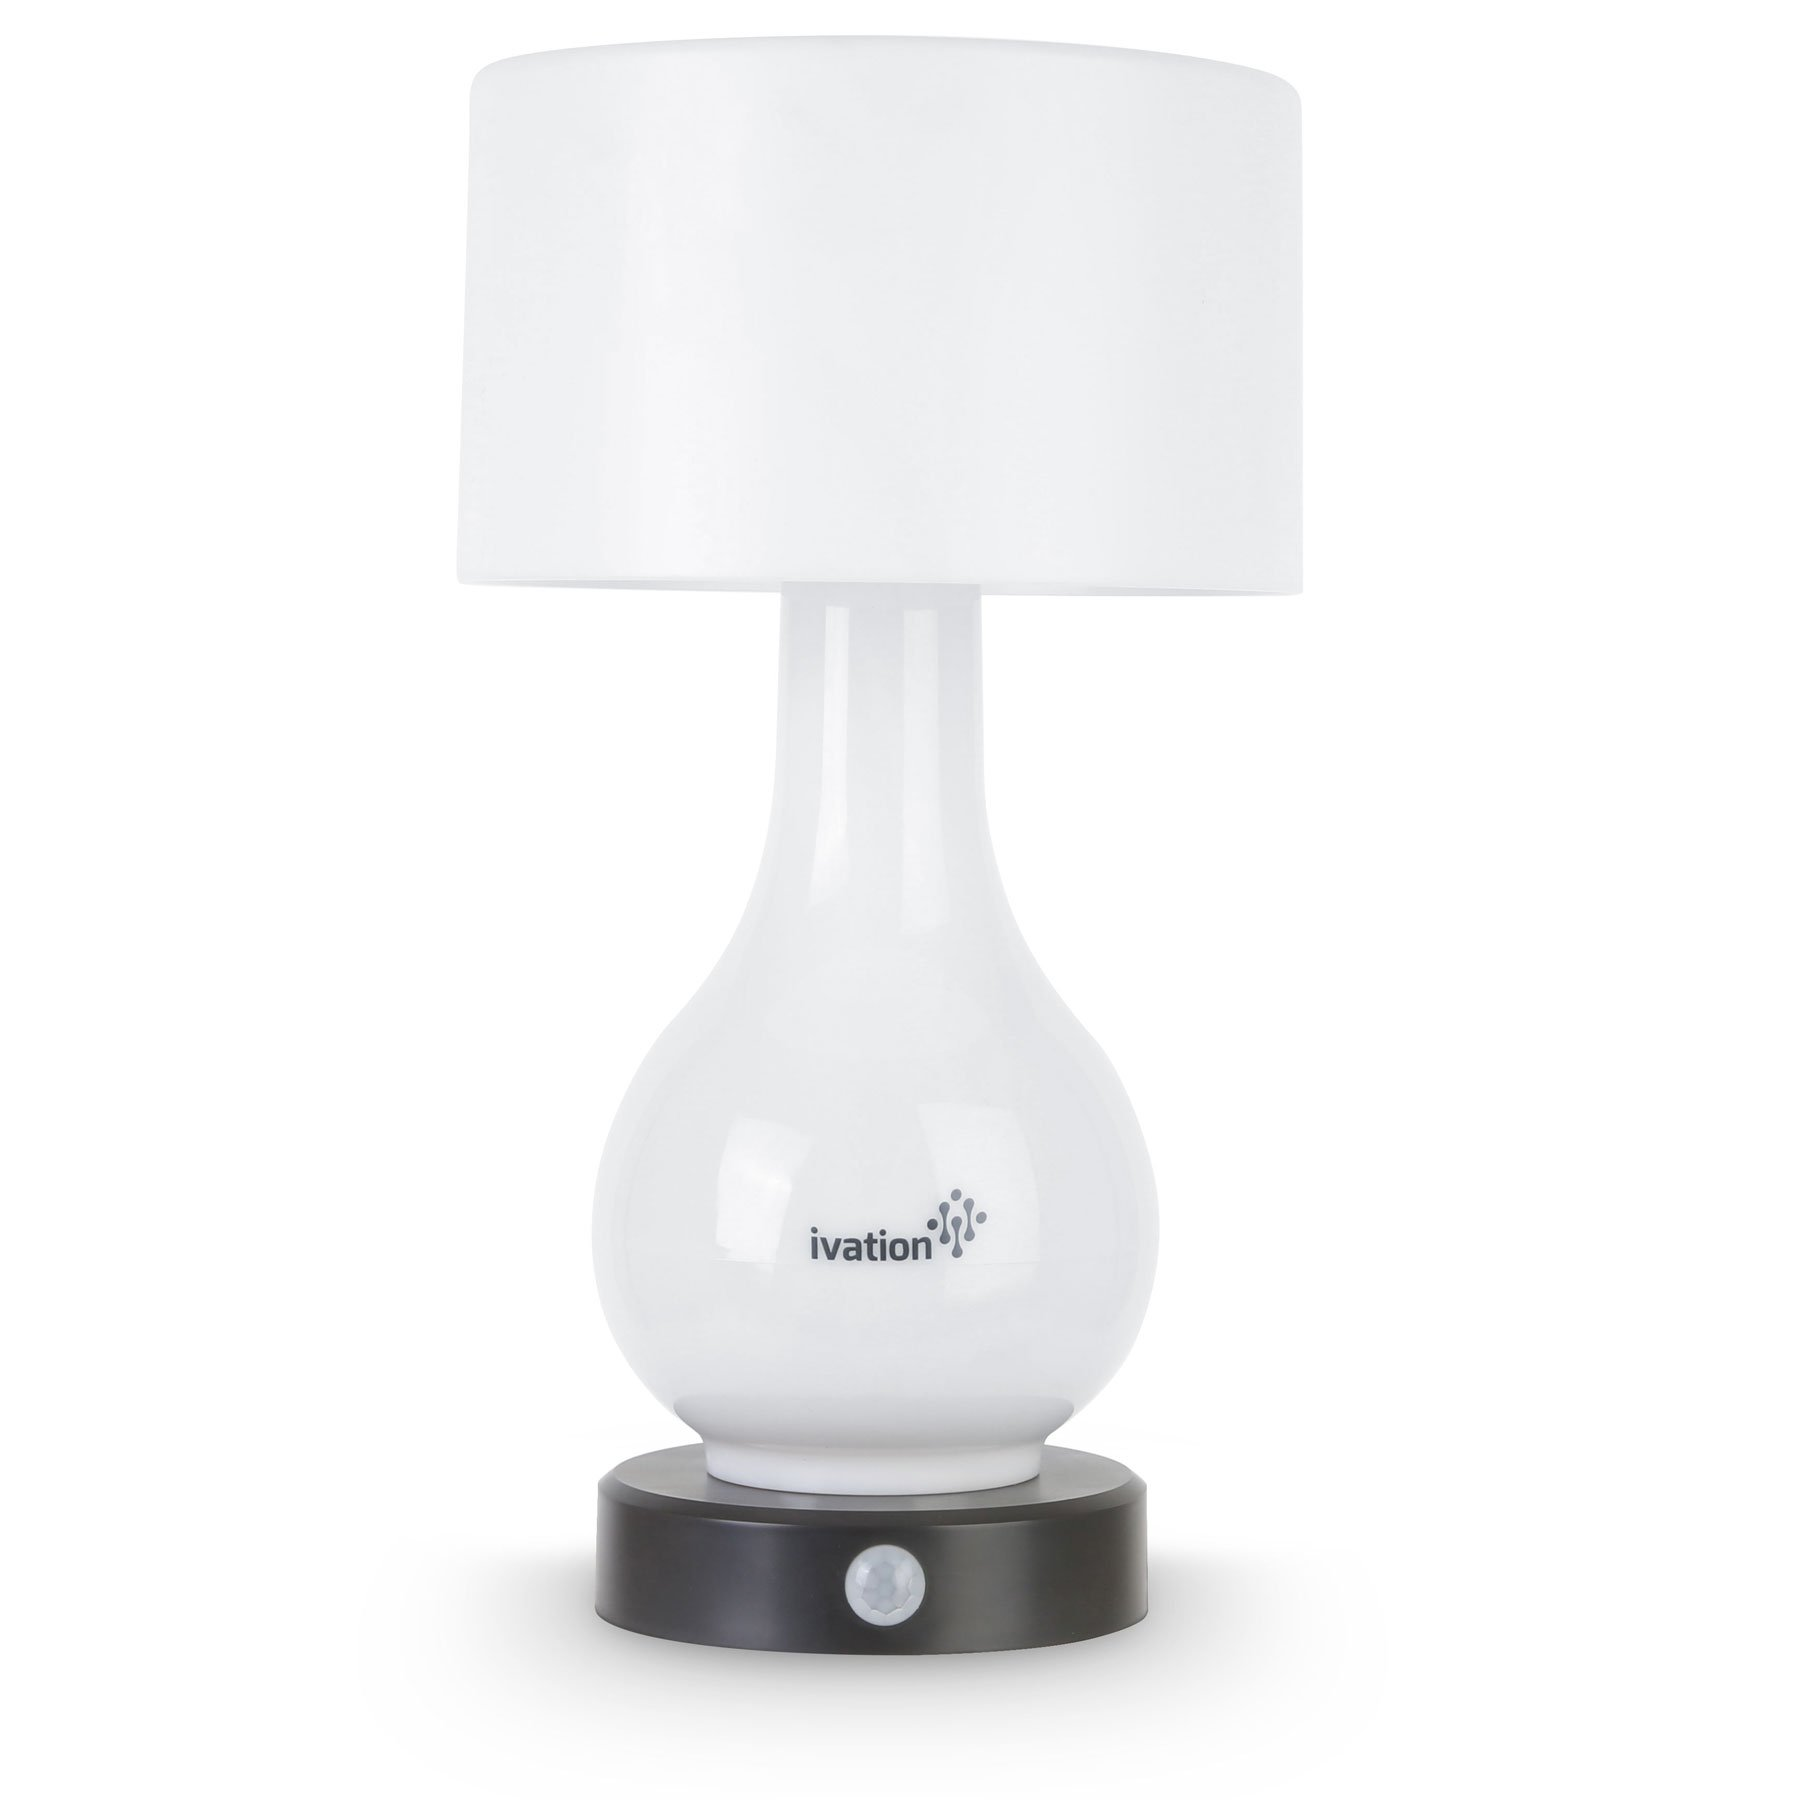 Ivation 6-LED Battery Operated Motion Sensing Table Lamp - Multi Zone Light: Body Only, Shade Only, or Both Body & Shade - can Also Light Continuously White